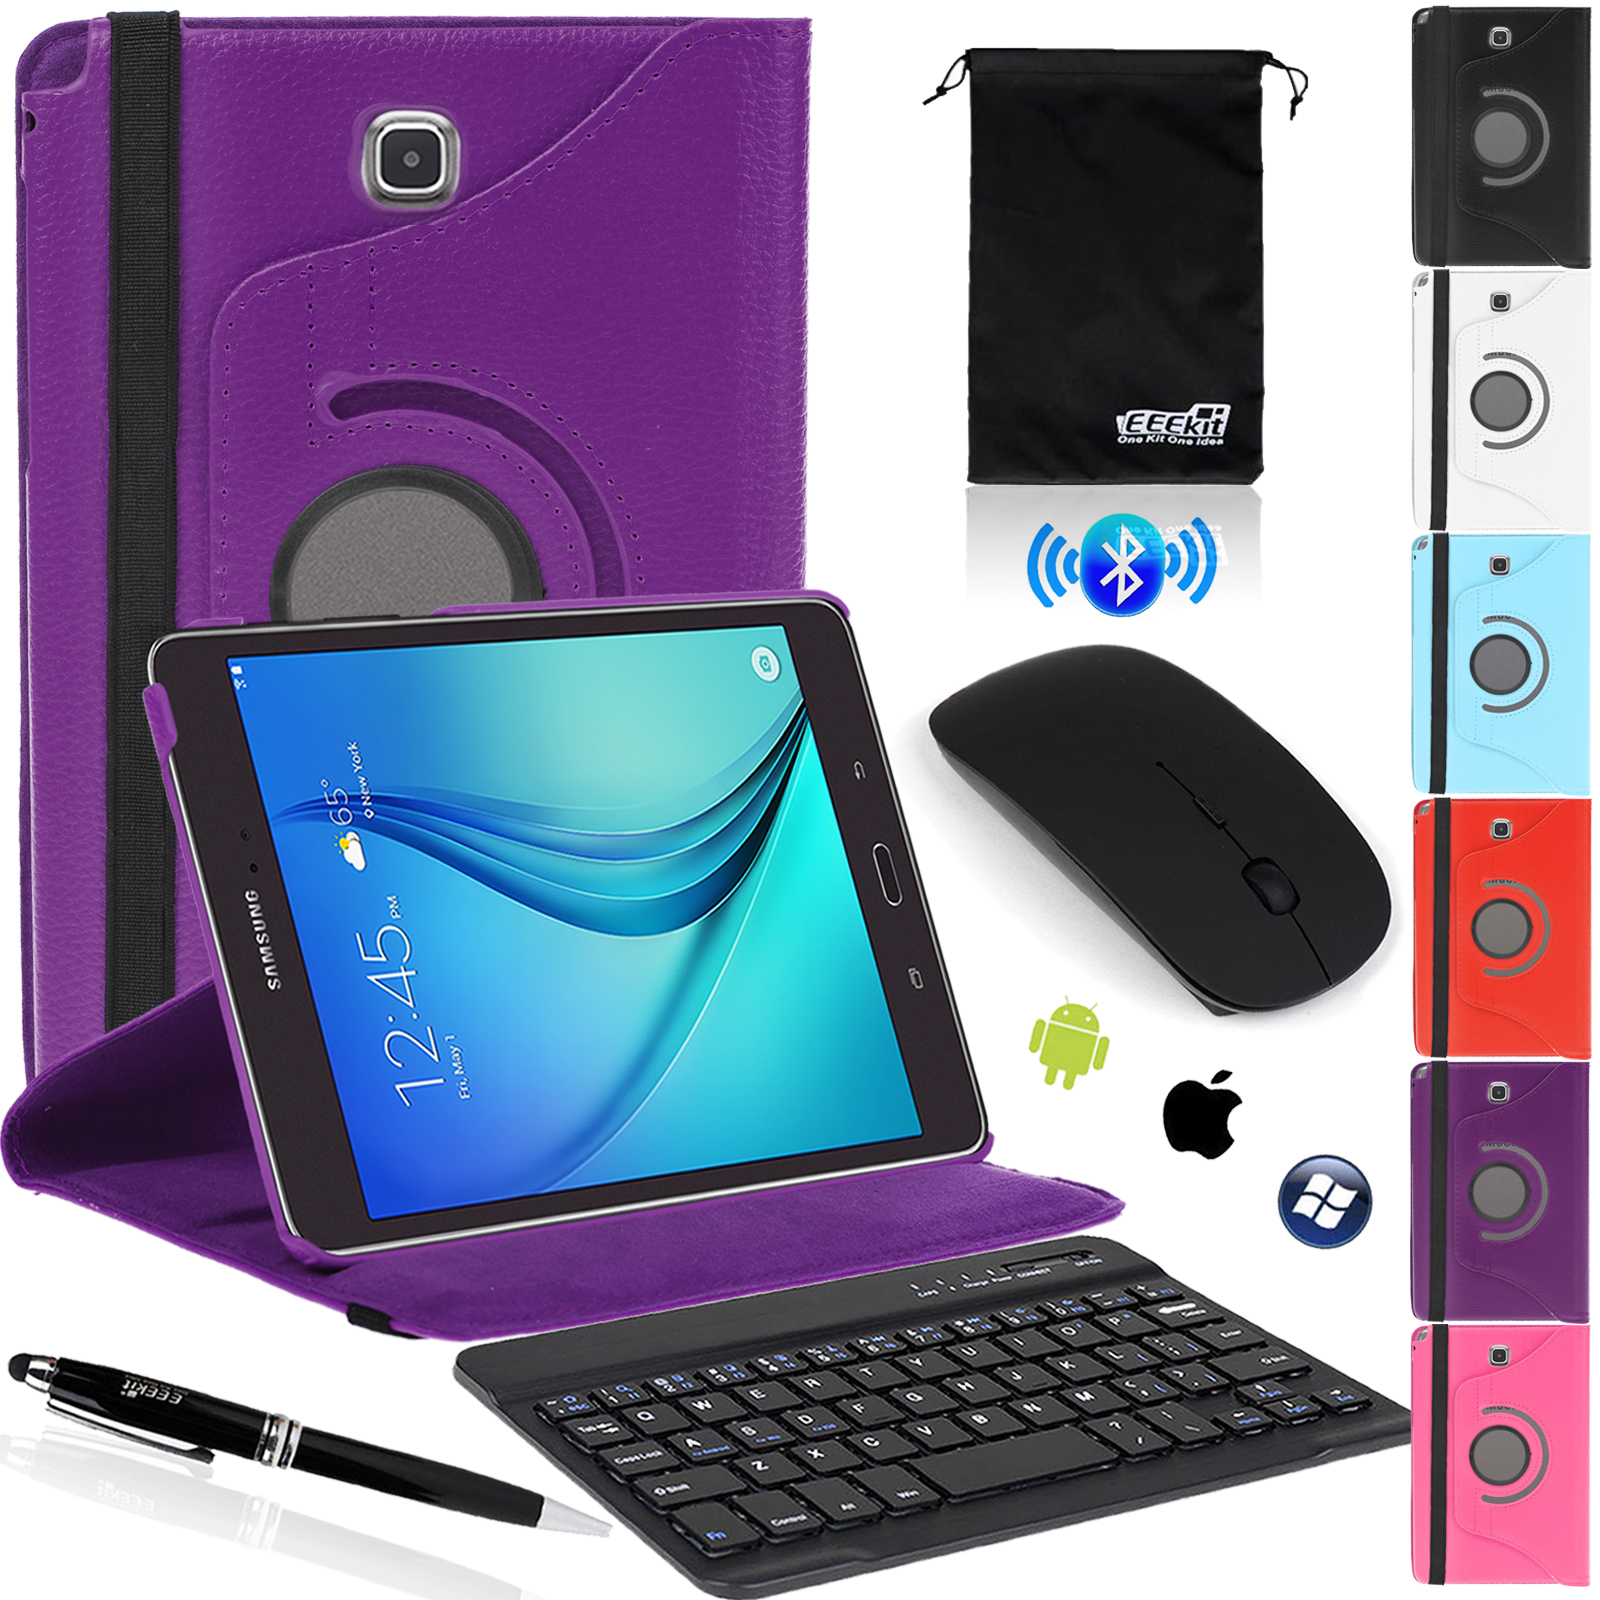 EEEKit for Samsung Galaxy Tab A 8.0 SM-T350,Folio Stand Cover Case,Wireless Bluetooth Keyboard & Mouse + Stylus